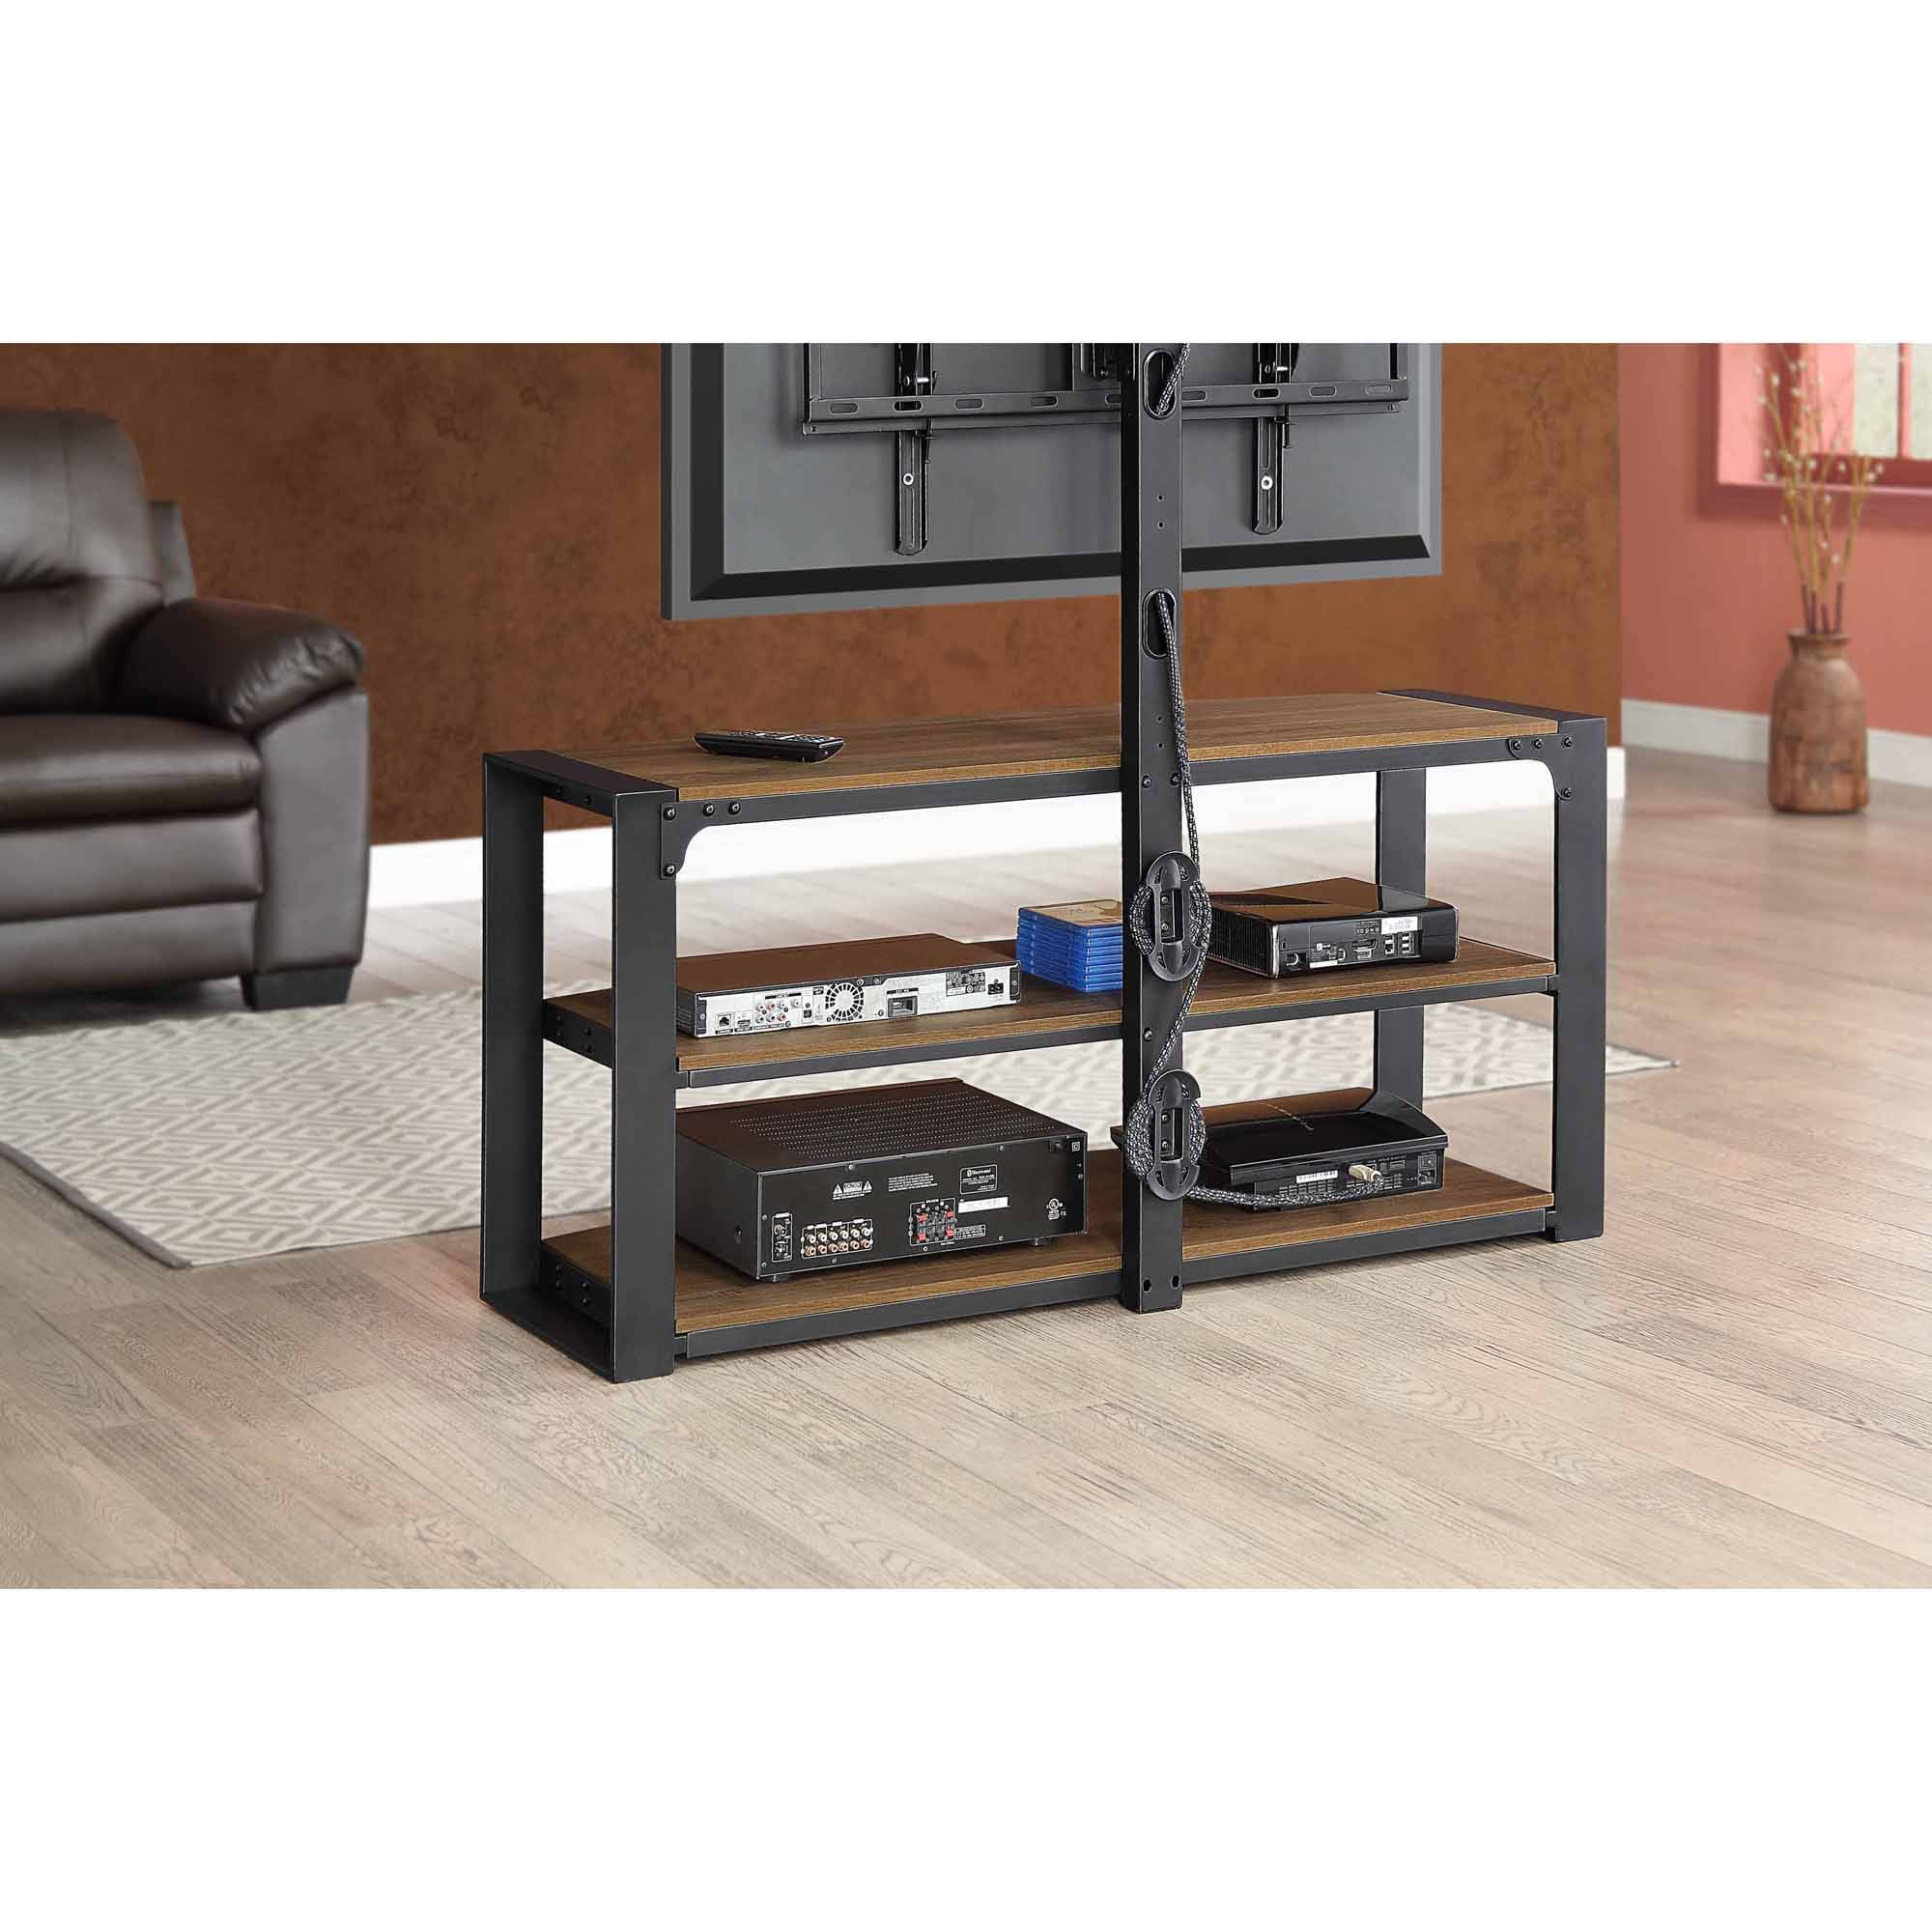 Santa Fe Bedroom Furniture Whalen Santa Fe 3 In 1 Tv Stand For Tvs Up To 65 Warm Ash Finish